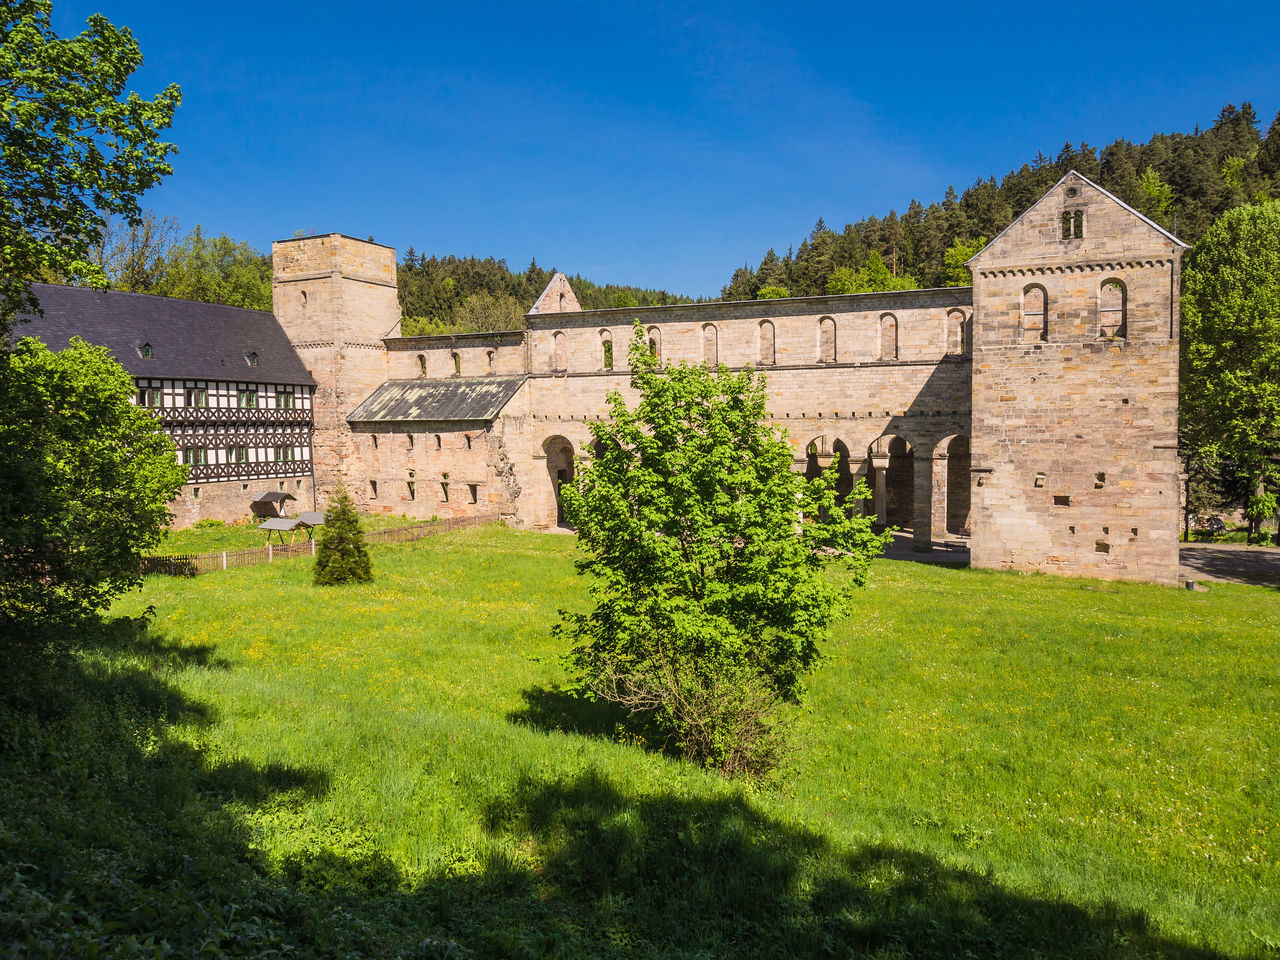 Monastery Paulinzella in Thuringia, Germany. Abbey Architecture Blue Building Exterior Clear Sky Cloister Convent Cultures Day History Landscaped Military Monastery No People Outdoors Paulinzella Royalty Sunlight The Past Thuringia War